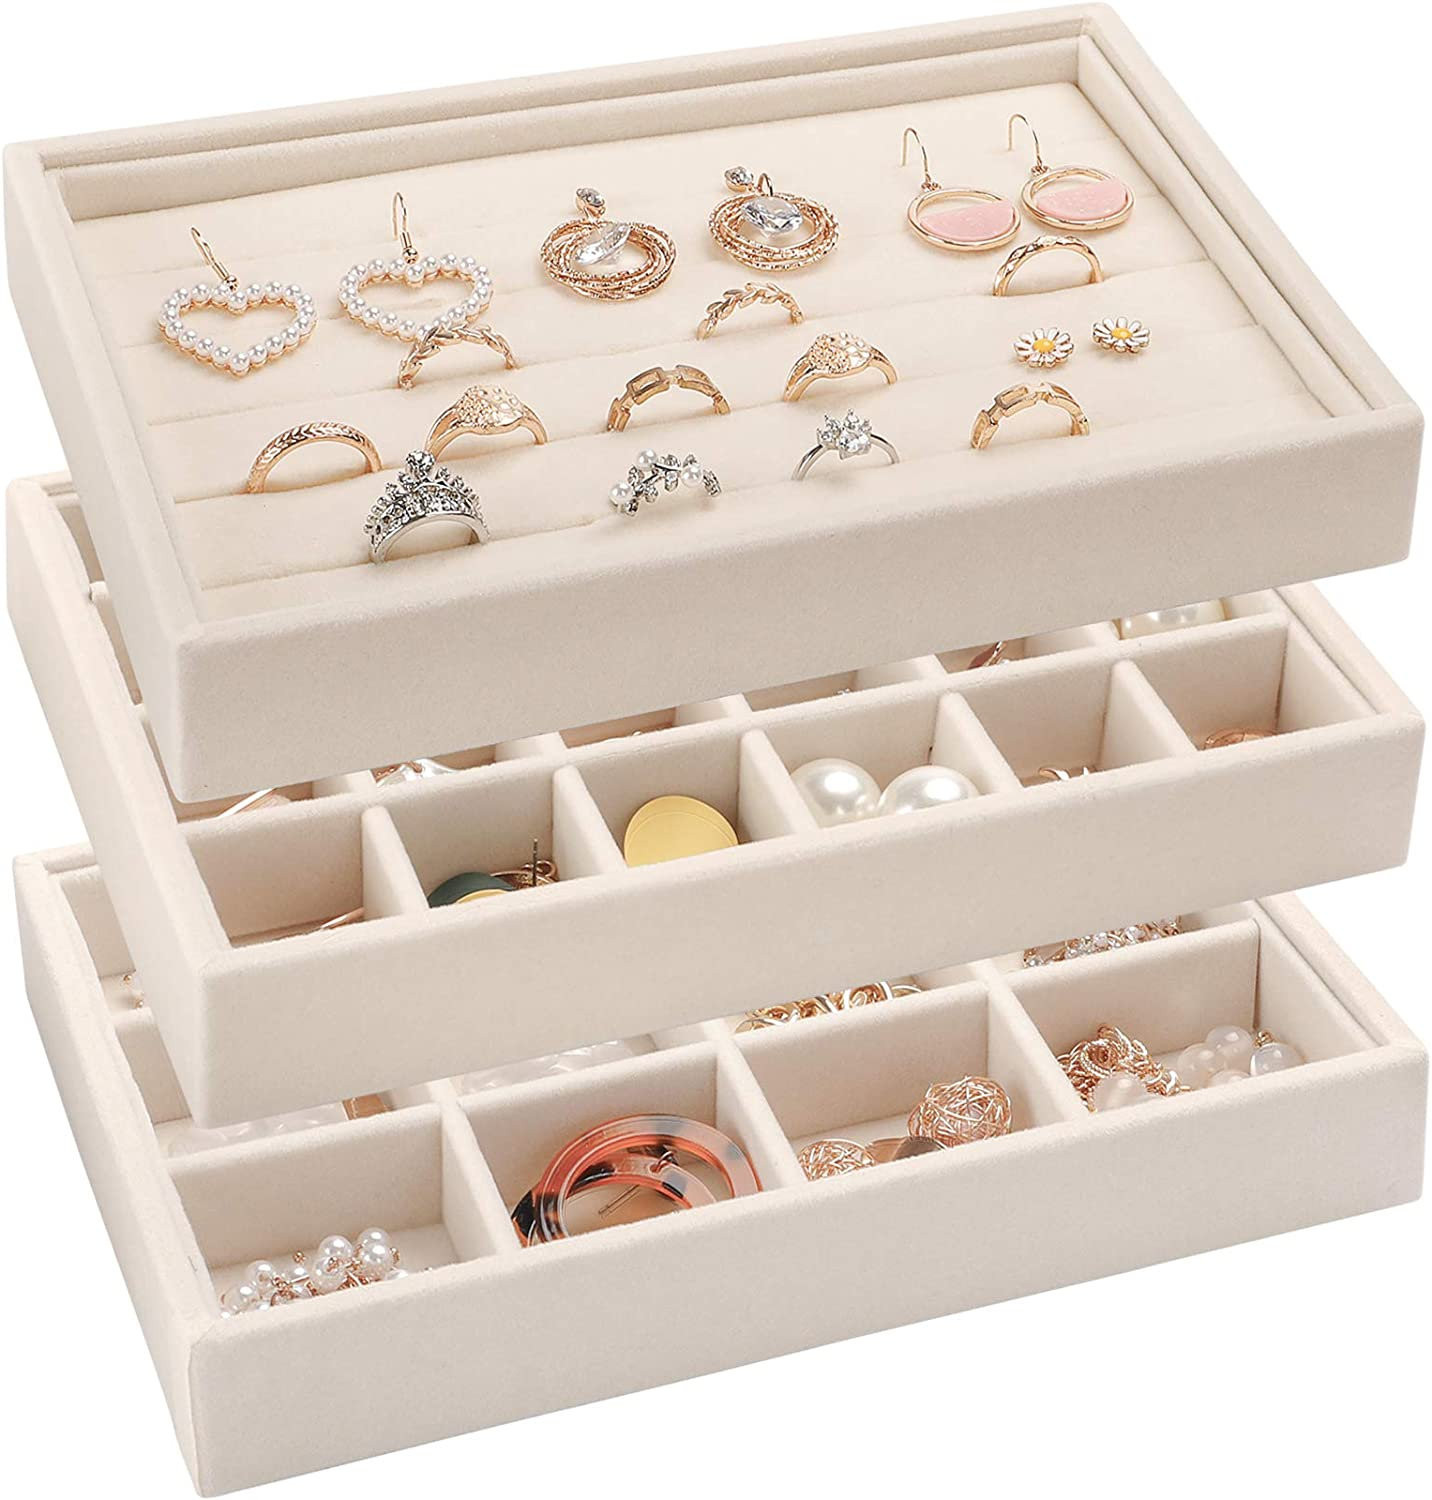 """Mebbay 8.6"""" Small Velvet Stackable Jewelry Tray Organizer Display for Drawer, Stud Earring Necklace Bracelet Ring Storage Tray, Set of 3 (White) : Clothing, Shoes & Jewelry"""